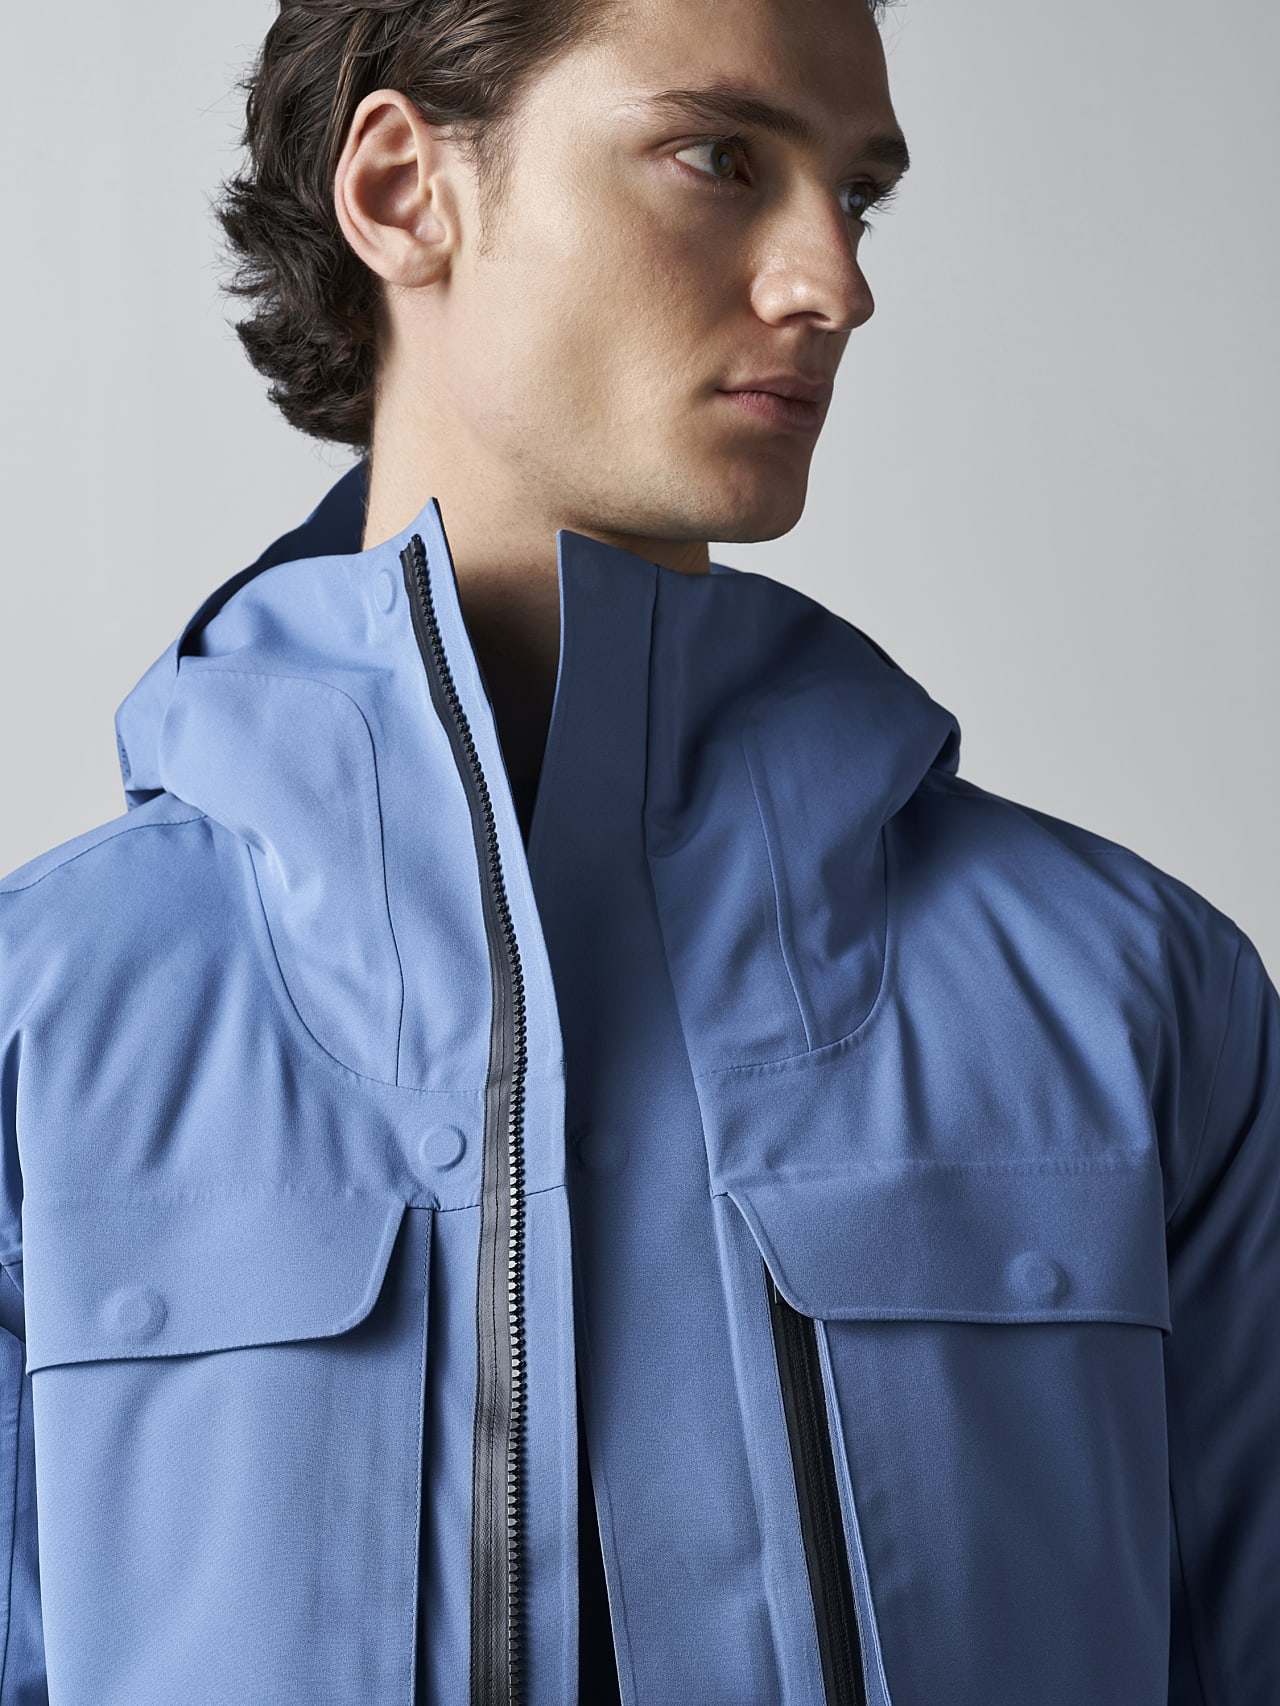 KOOV V6.Y5.02 Packable and Waterproof Winter Parka light blue Right Alpha Tauri